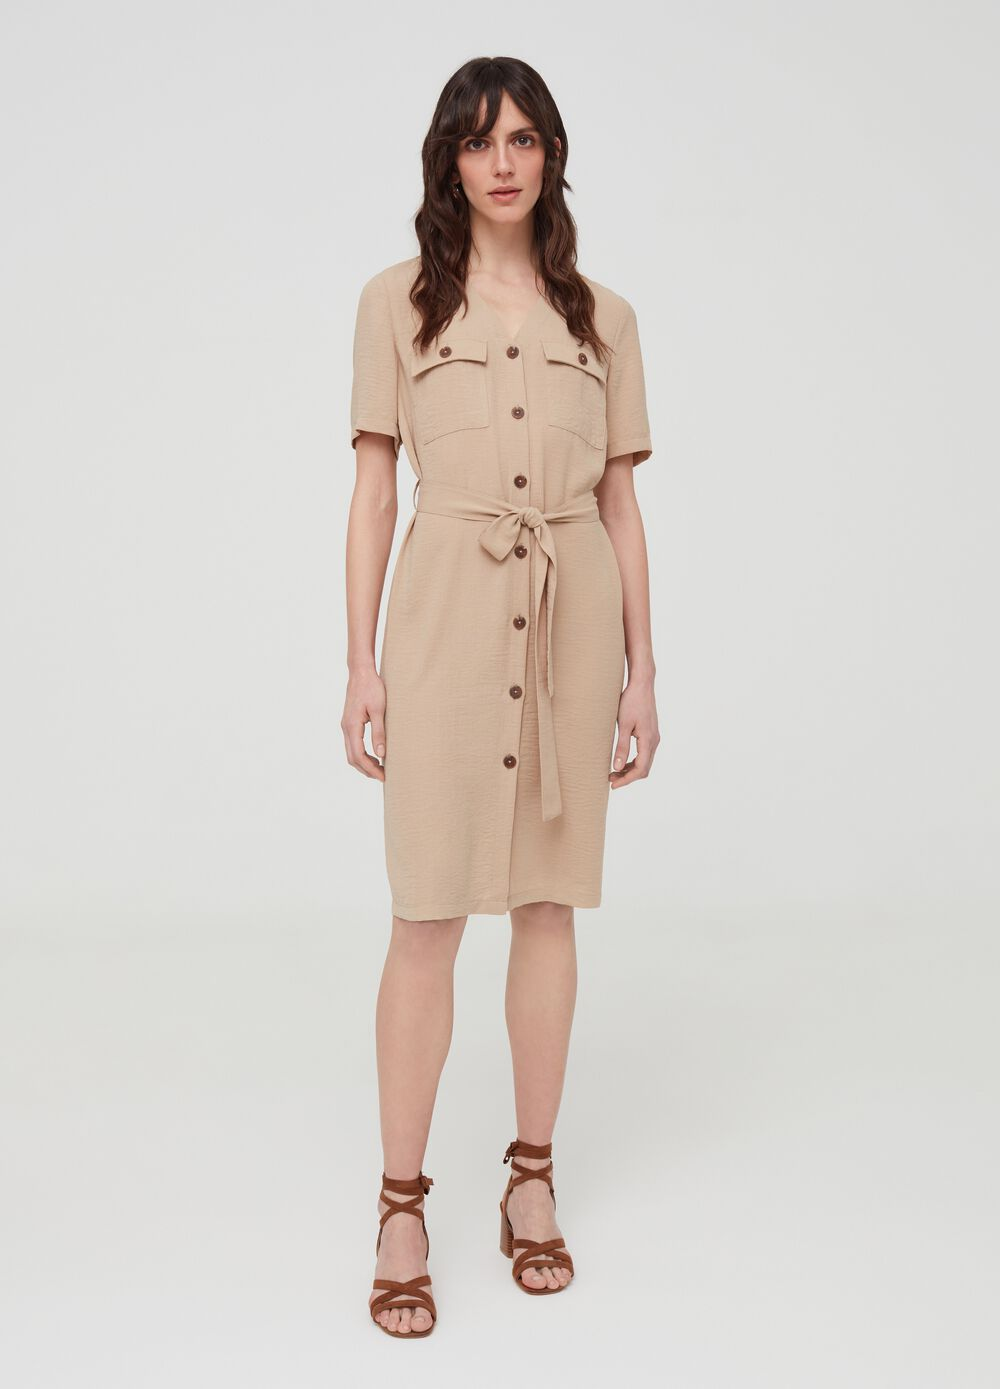 Shirt dress with belt and pockets